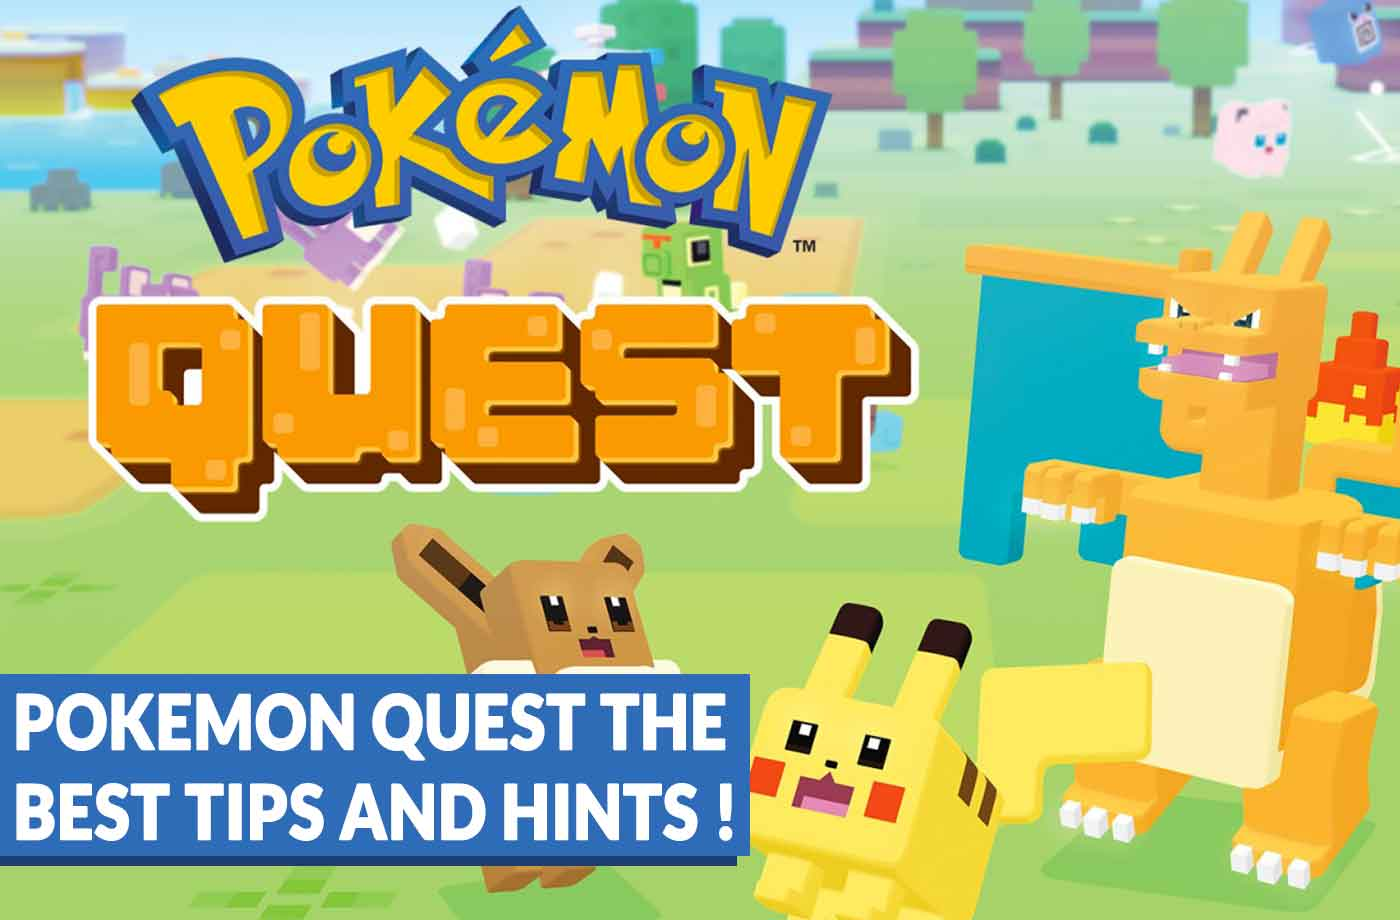 guide pokemon quest tips and hints to become the best trainer of the